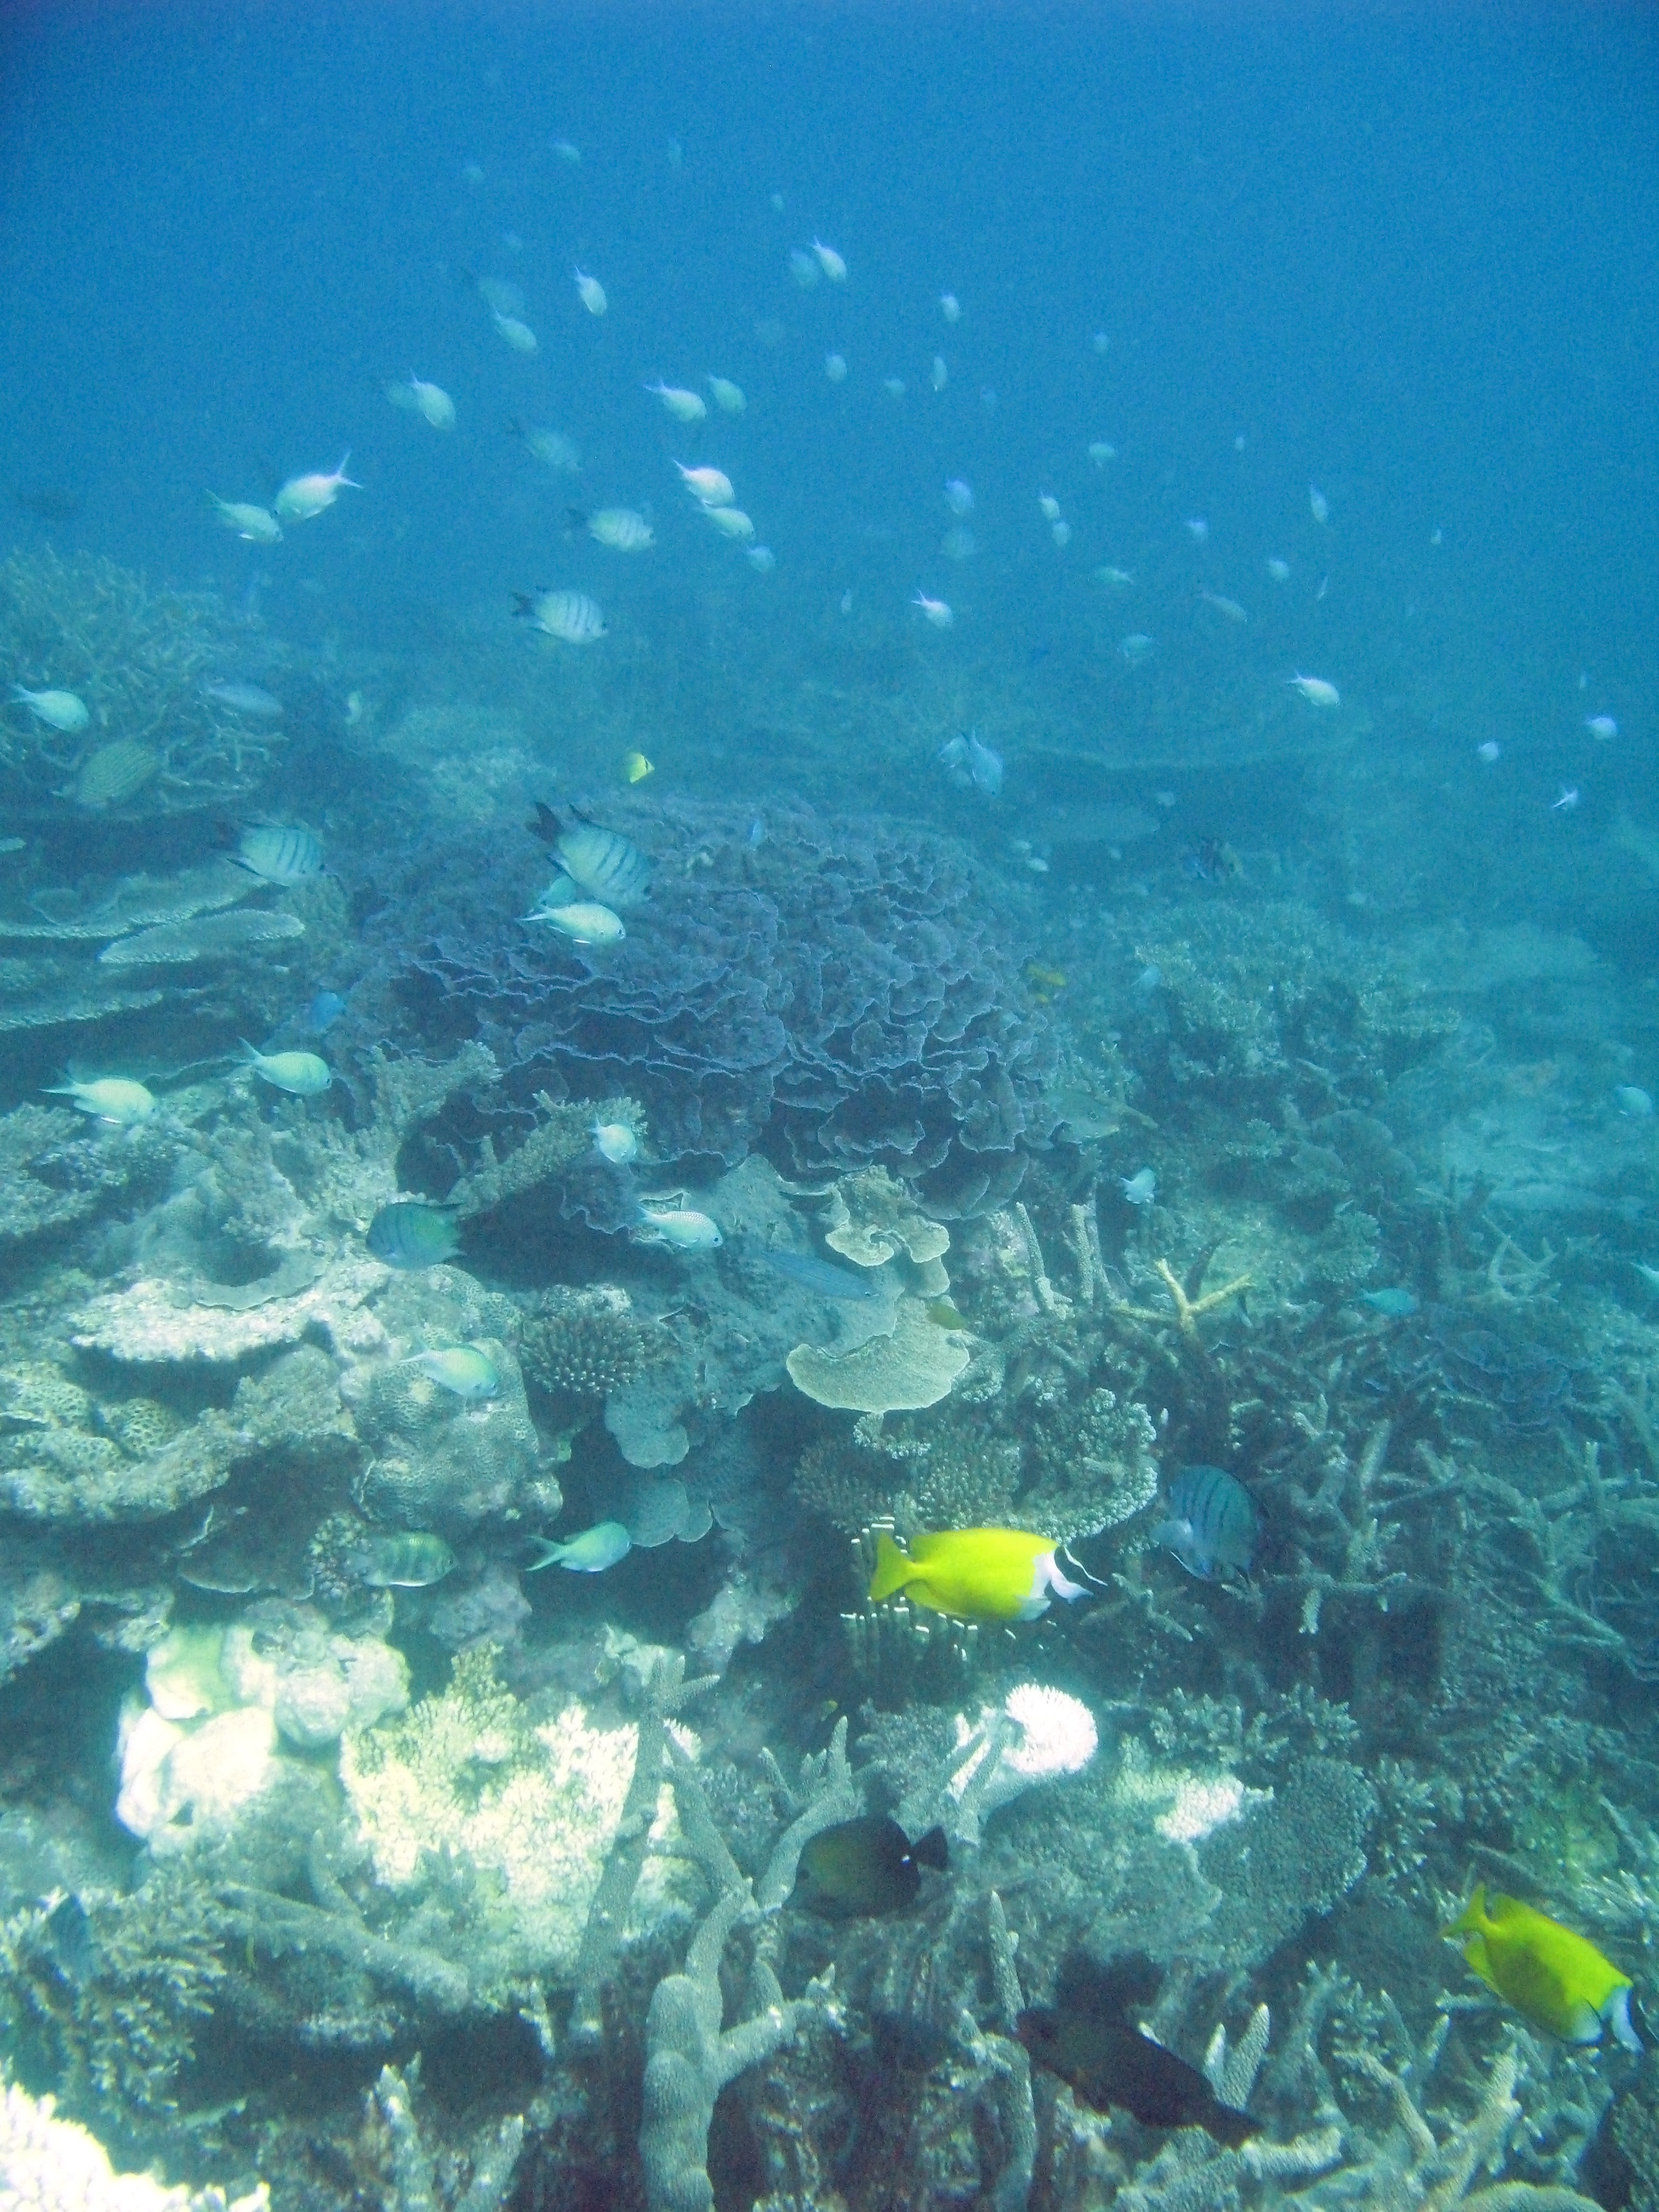 schools of fish swimming amongst a coral reef